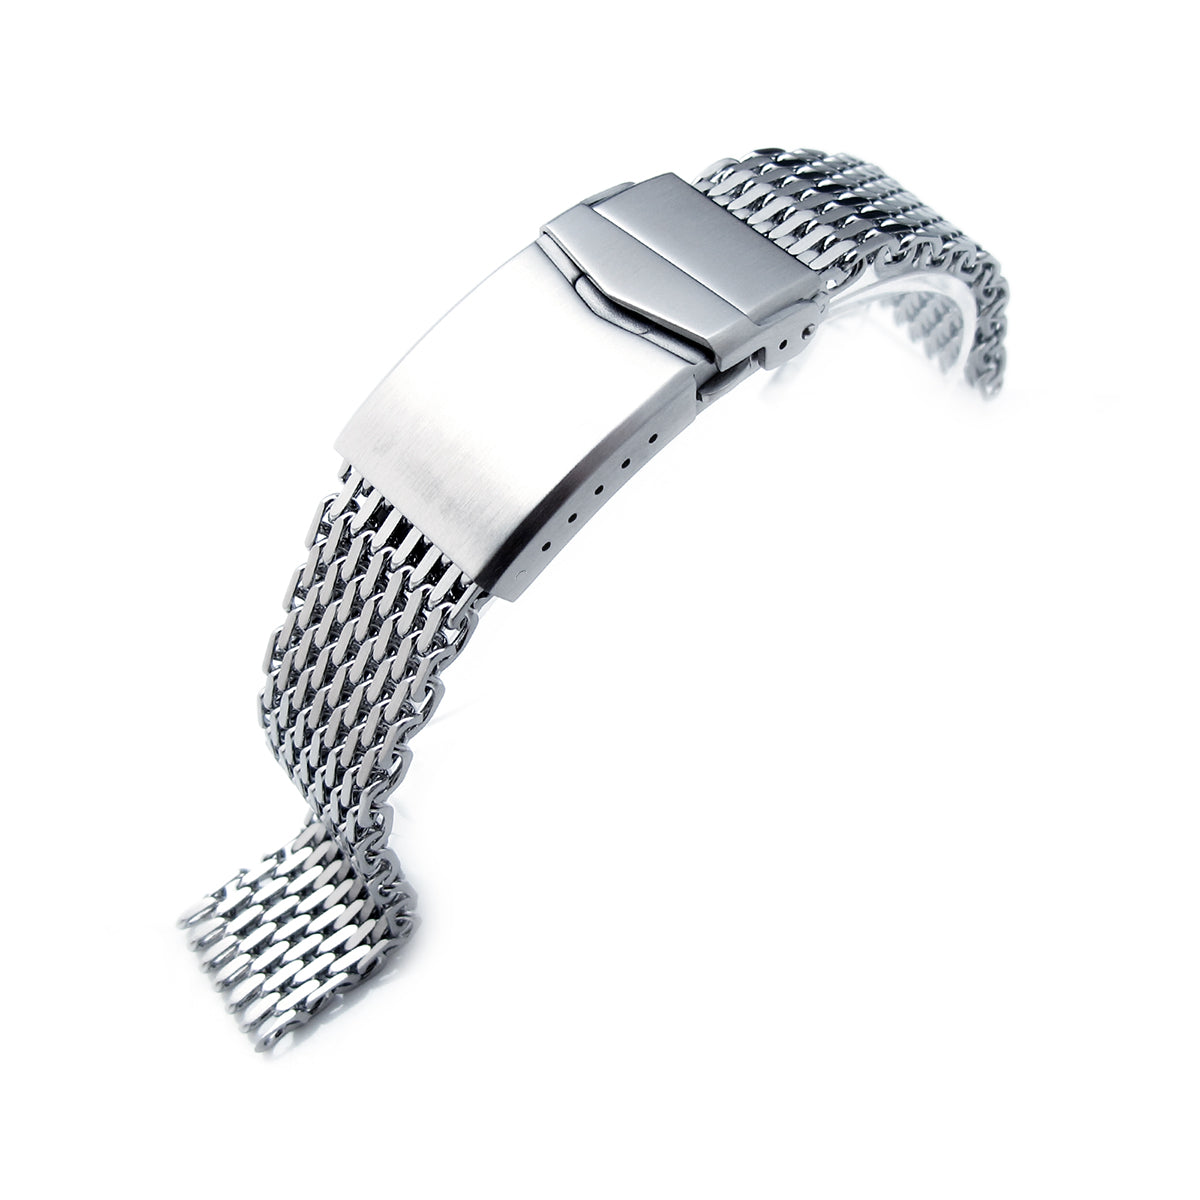 17mm 18mm Ploprof 316 Reform Stainless Steel SHARK Mesh Watch Band V-Clasp Button Double Lock B Strapcode Watch Bands